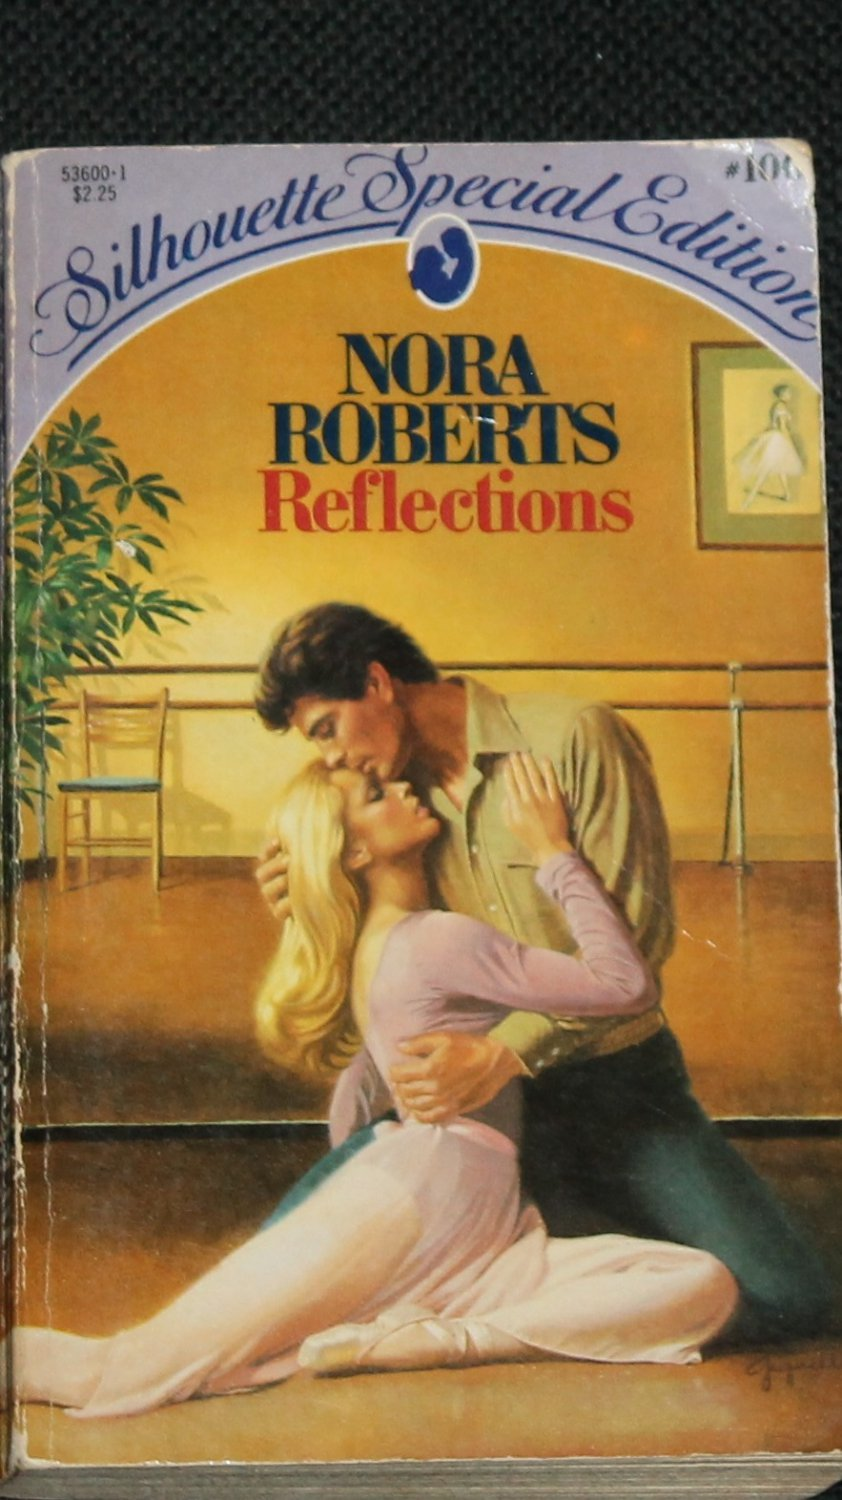 Reflections - romance novel book by Nora Roberts romantic story paperback book